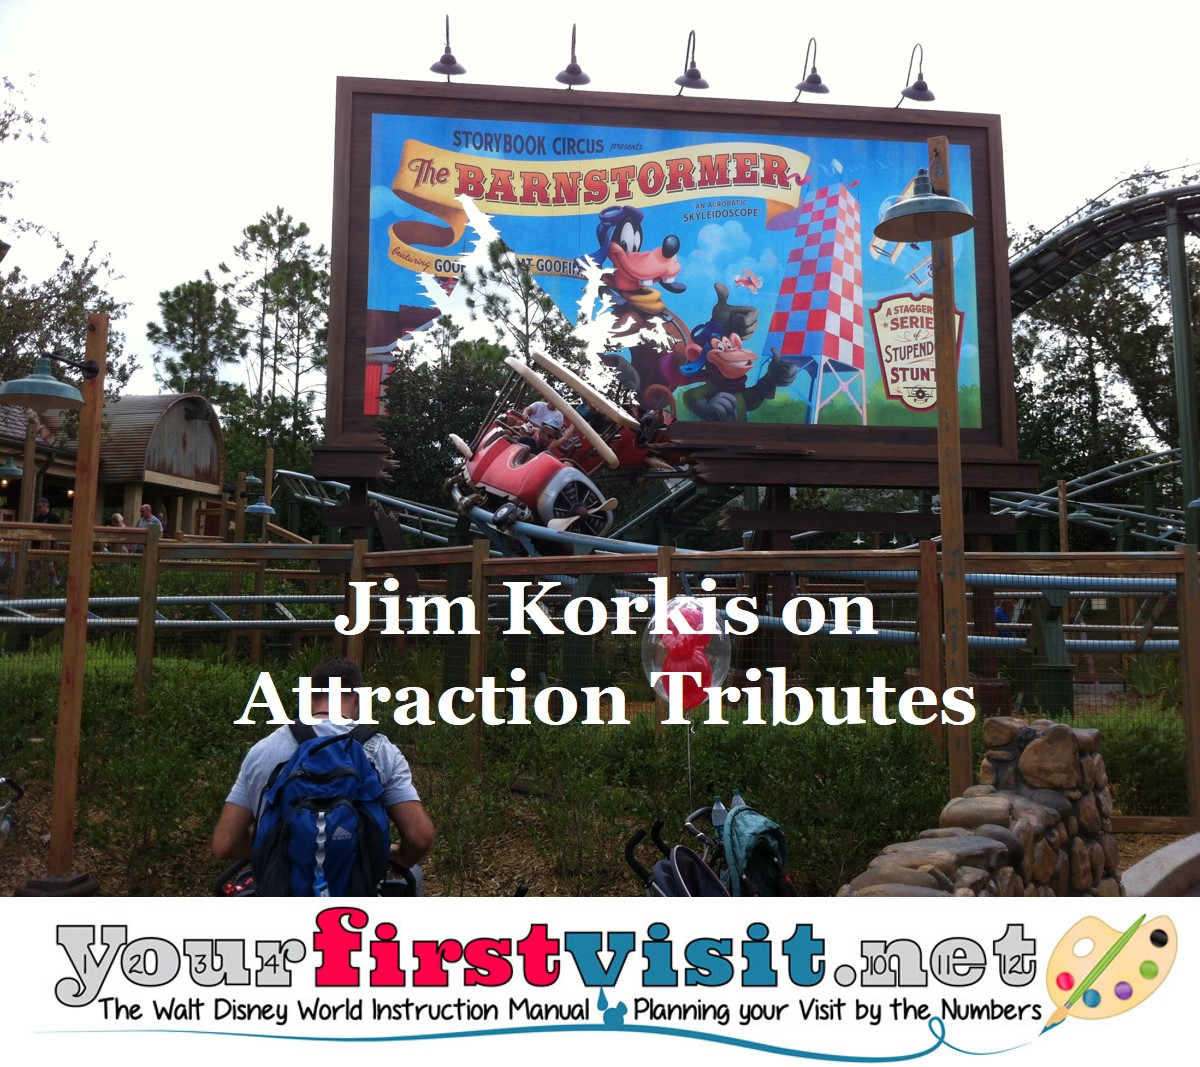 jim-korkis-on-tributes-to-lost-attractions-from-yourfirstvisit-net